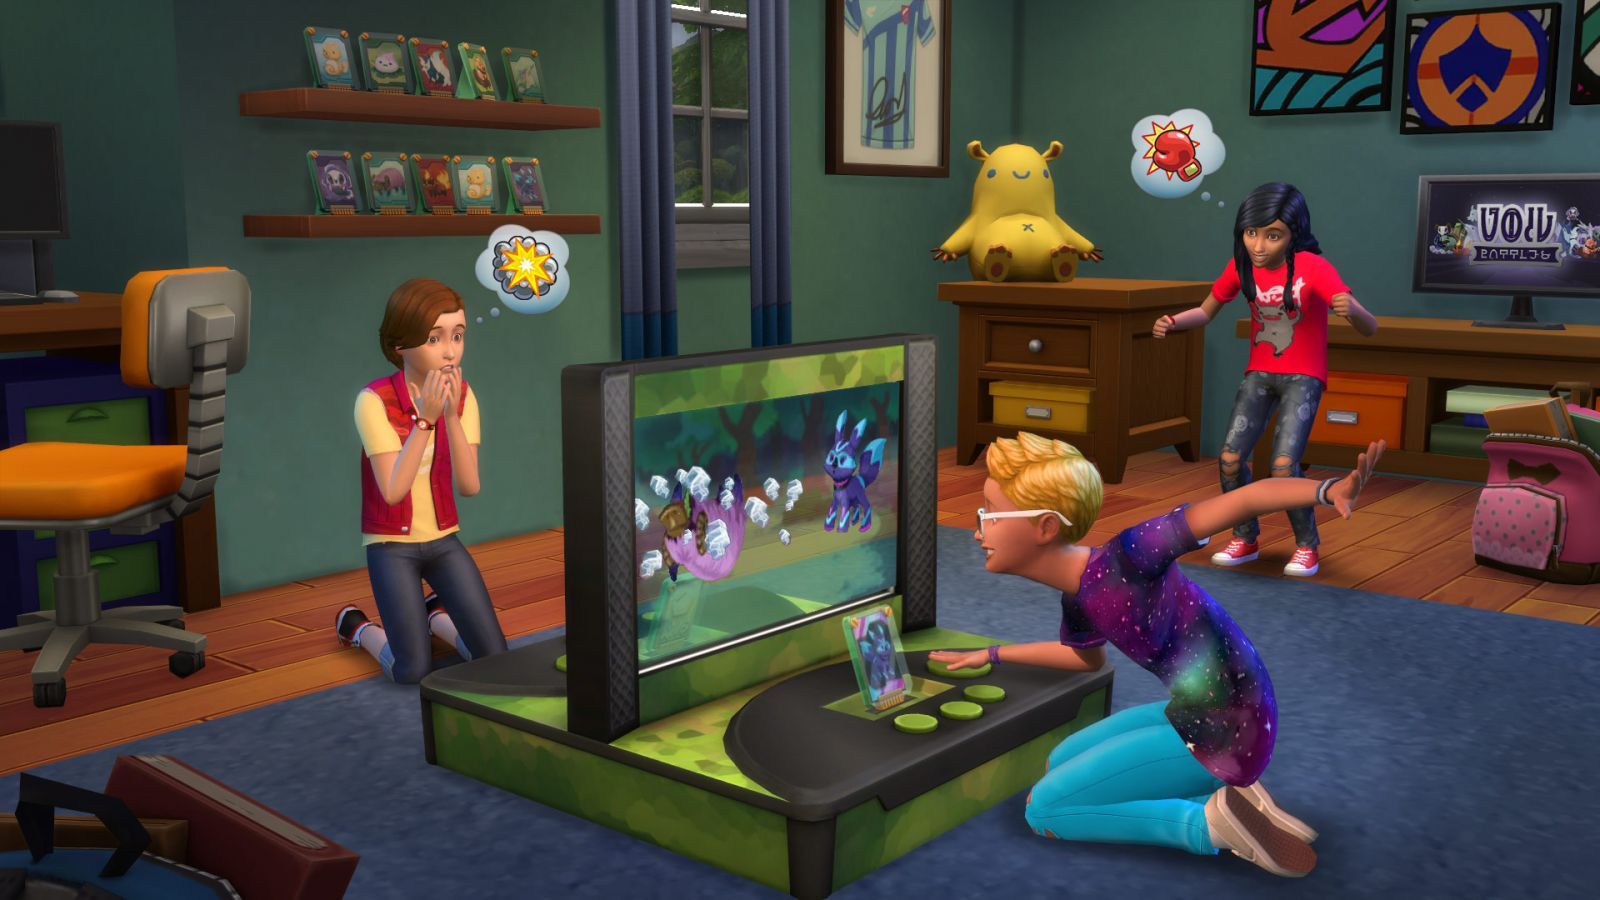 Sims 4 Cheats - The sims 4 kids rooms stuff